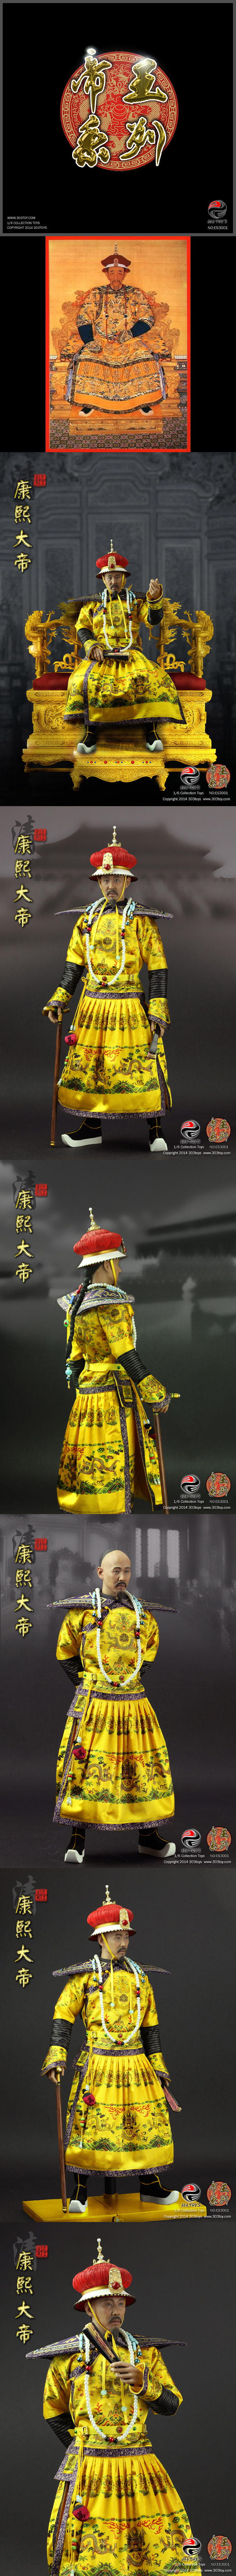 [303TOYS 1/6 No:ES3001 Series Of Emperors -Kangxi The Great]